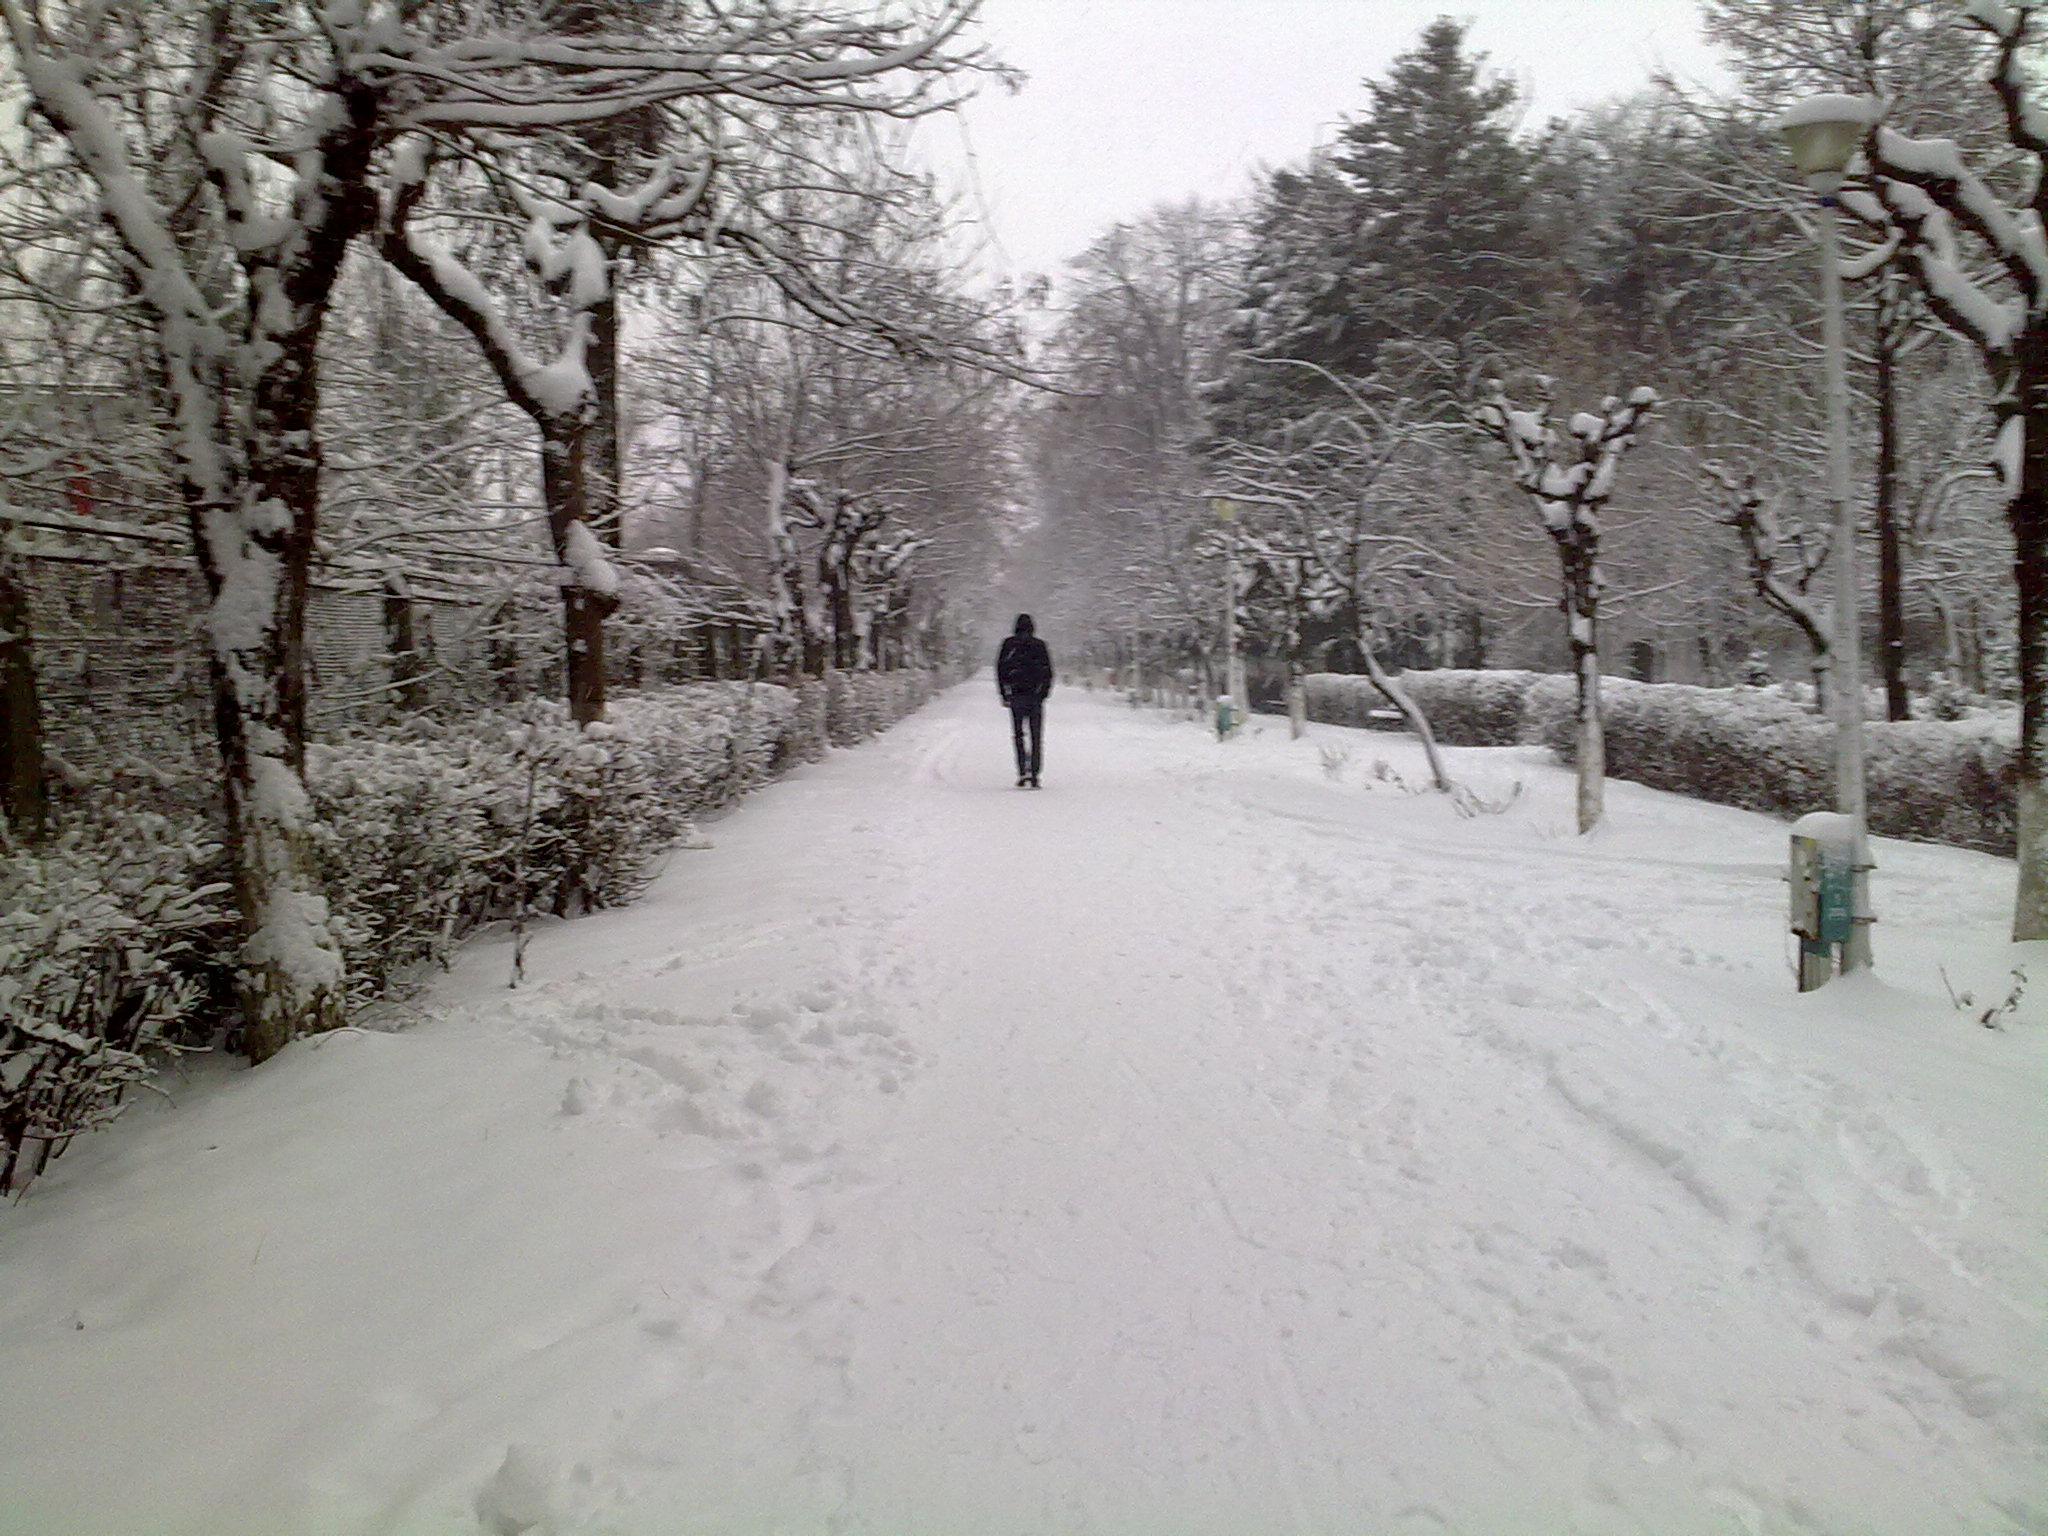 Hd wallpaper road - Lonely Winter Wallpaper Viewing Gallery